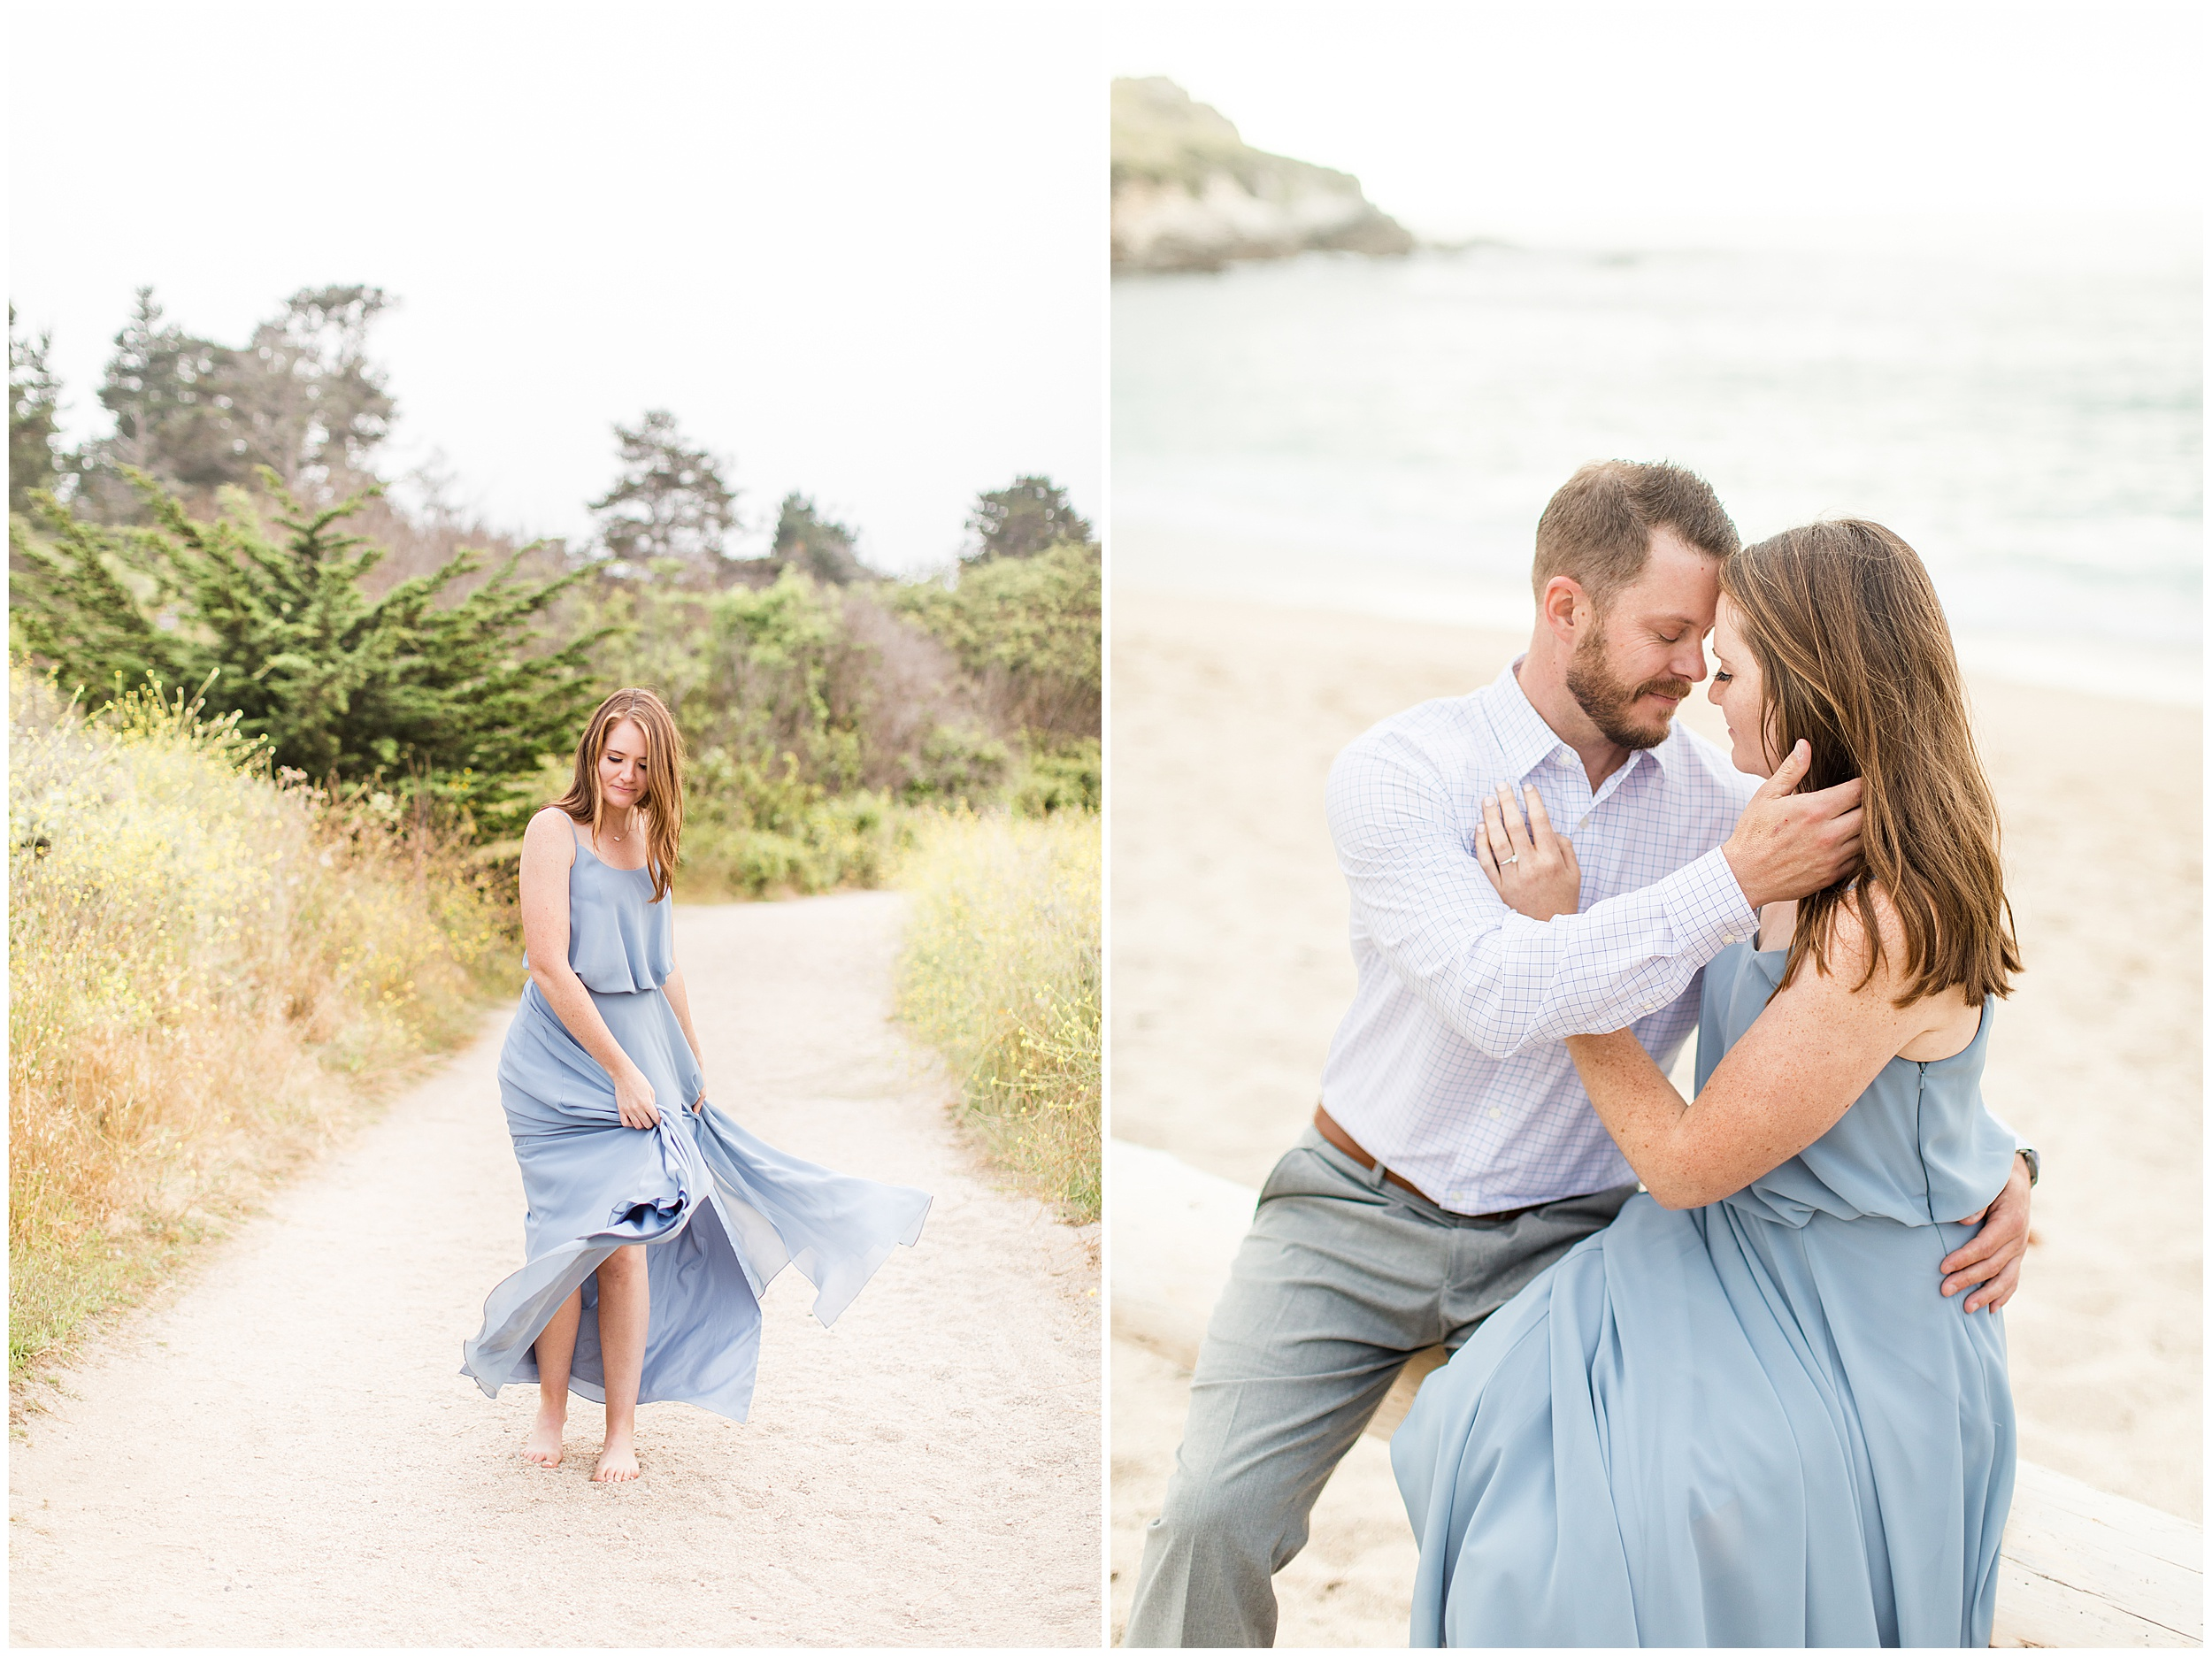 2019 carmel by the sea surprise proposal engagement session wedding photographer angela sue photography_0039.jpg